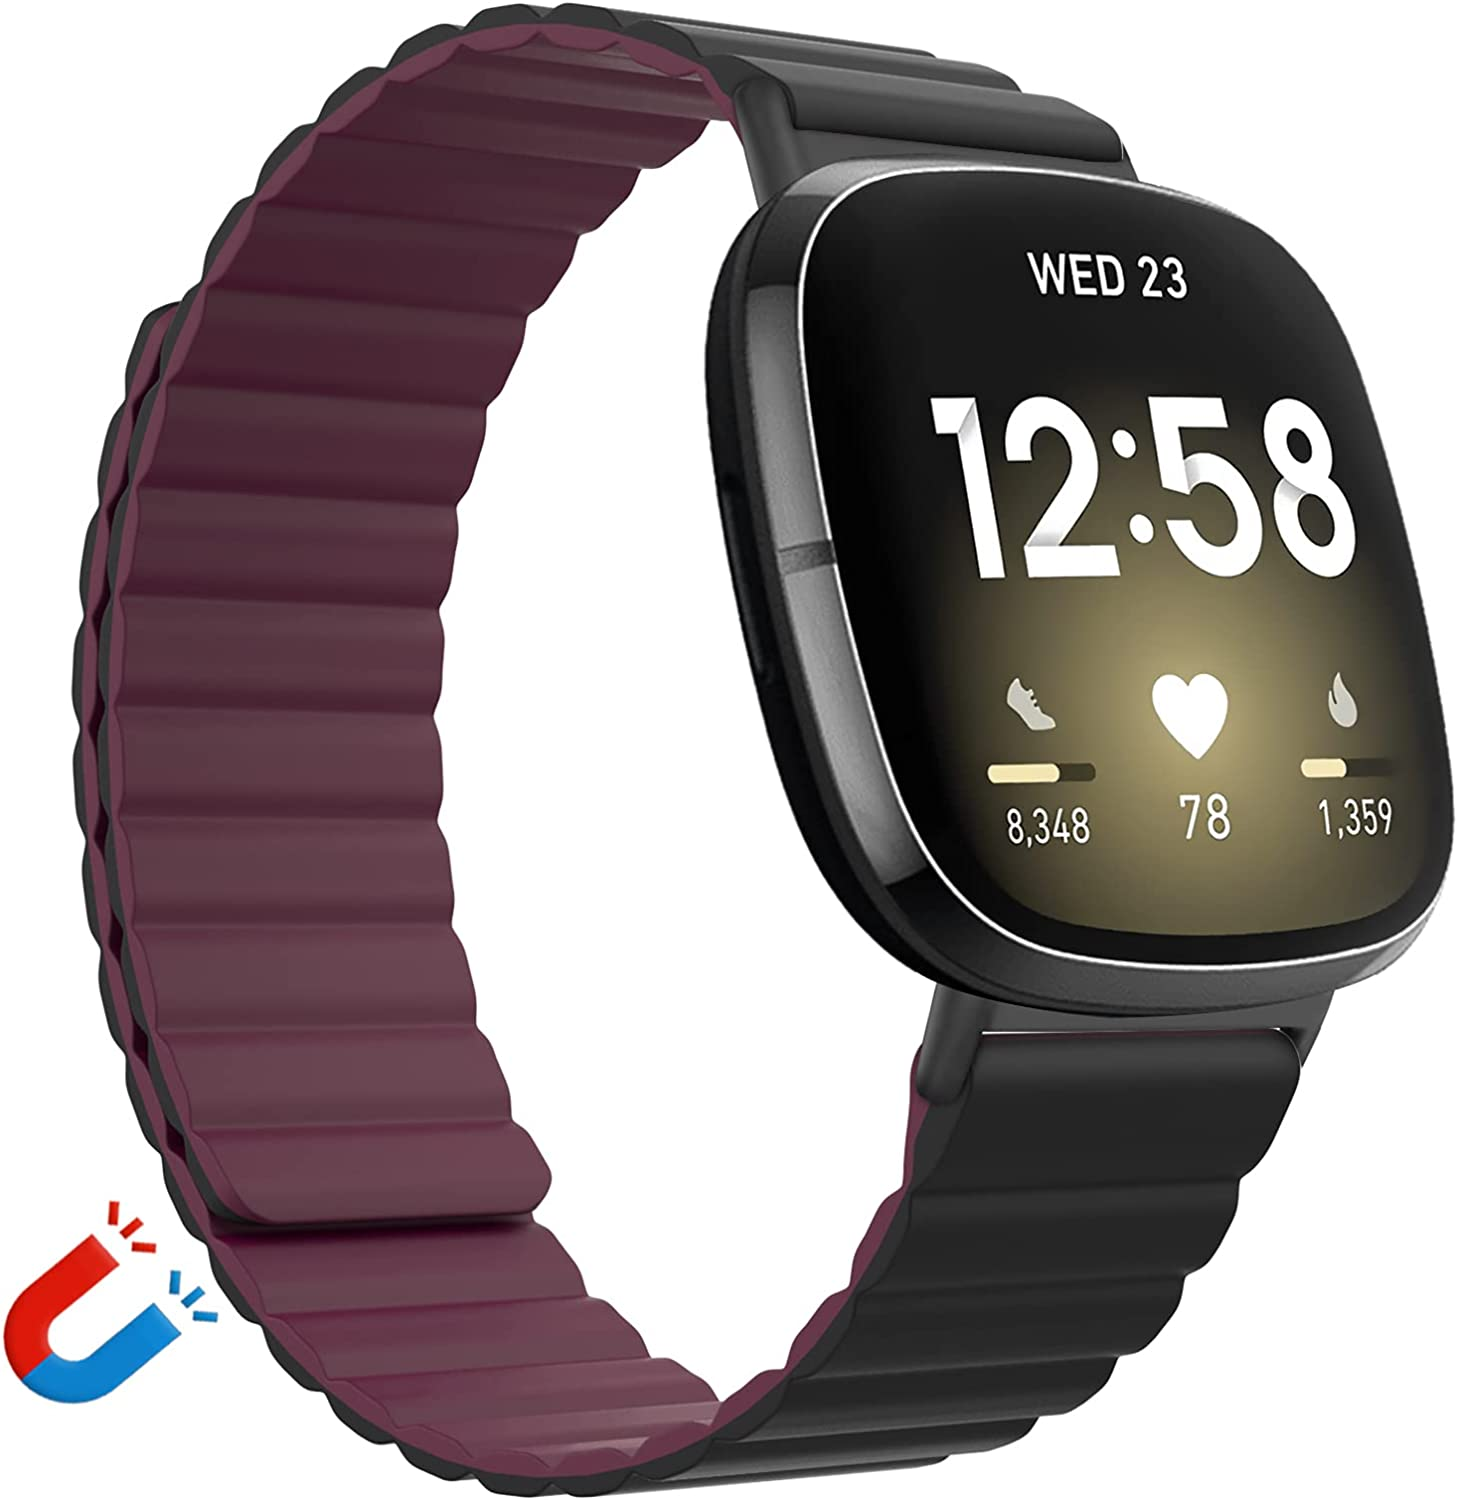 Vanet Silicone Magnetic Bands Compatible with Fitbit Versa 3/Fitbit Sense Bands for Women Men, Adjustable Silicone Loop Strap with Magnetic Closure Bands for Versa 3 Women, Small-Black with Wine Red